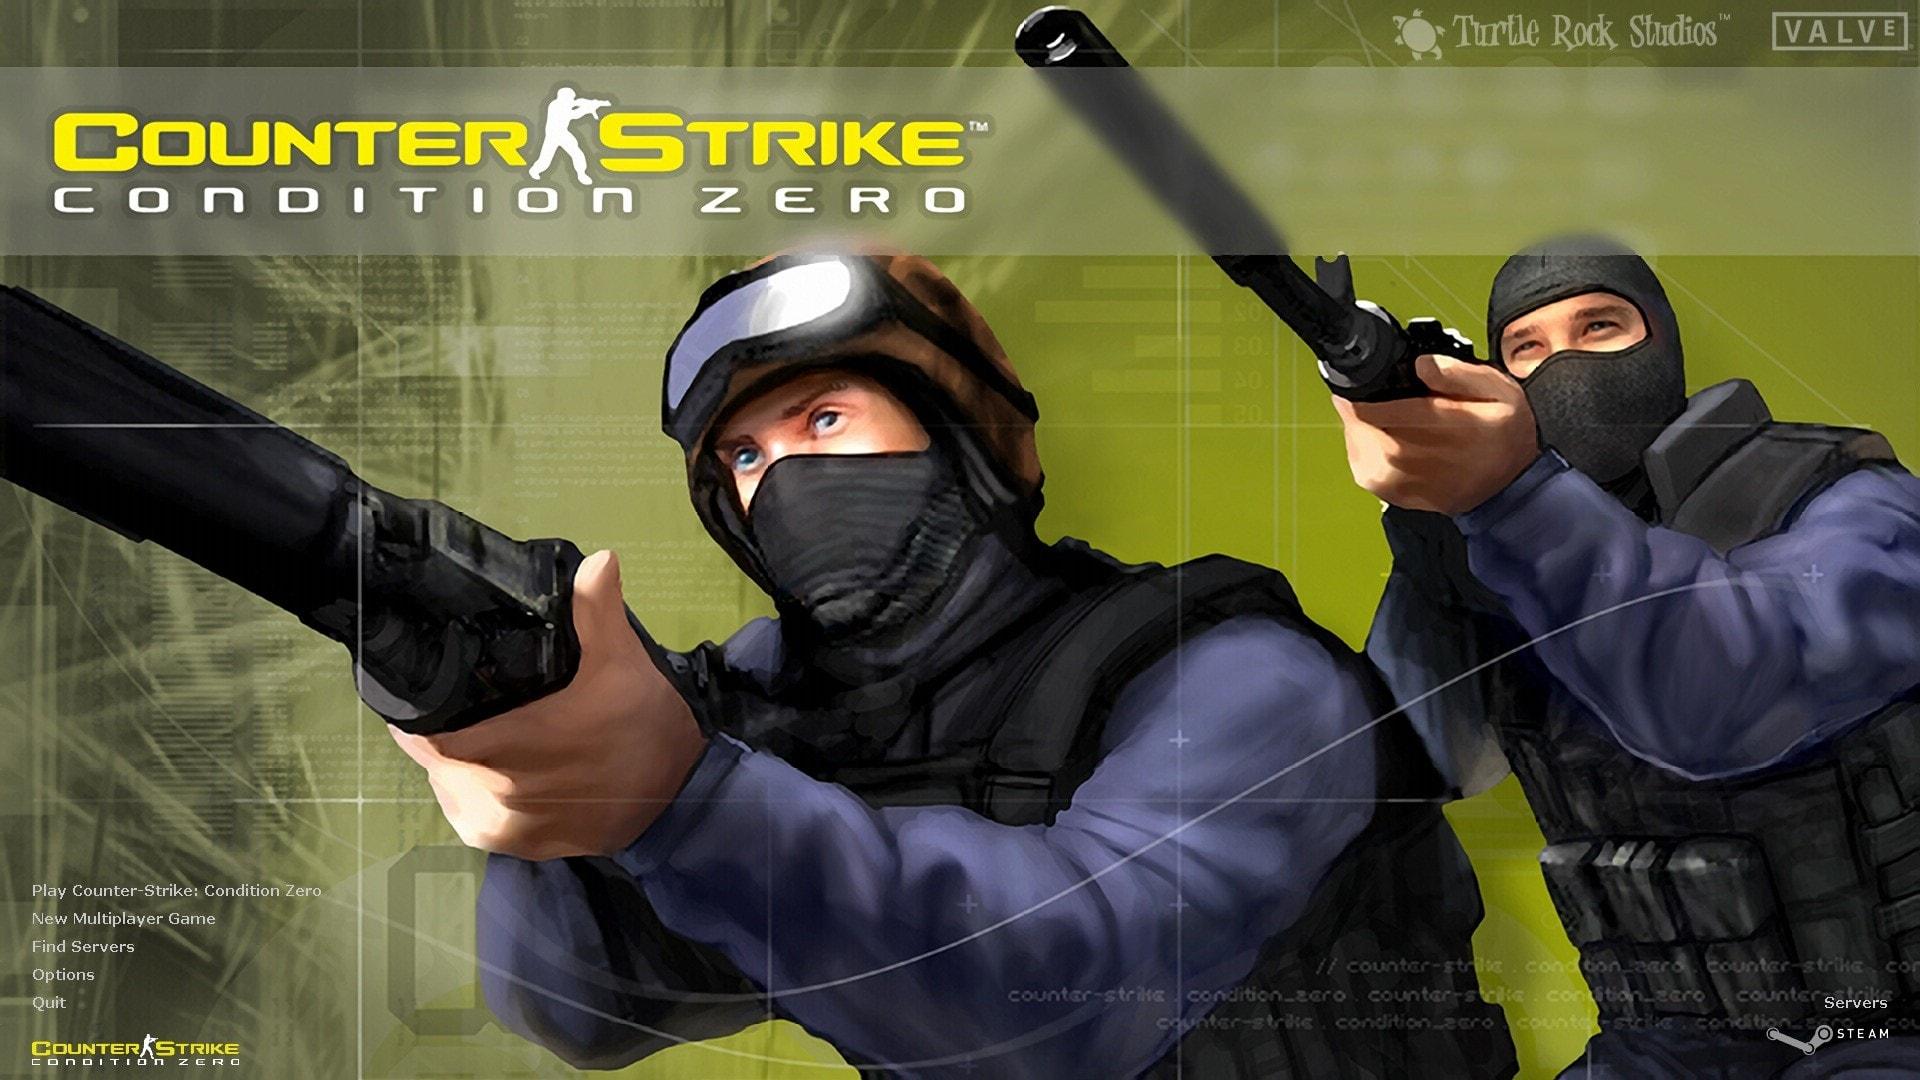 Counter strike condition zero hd desktop wallpapers 7wallpapers counter strike condition zero widescreen wallpapers gumiabroncs Images